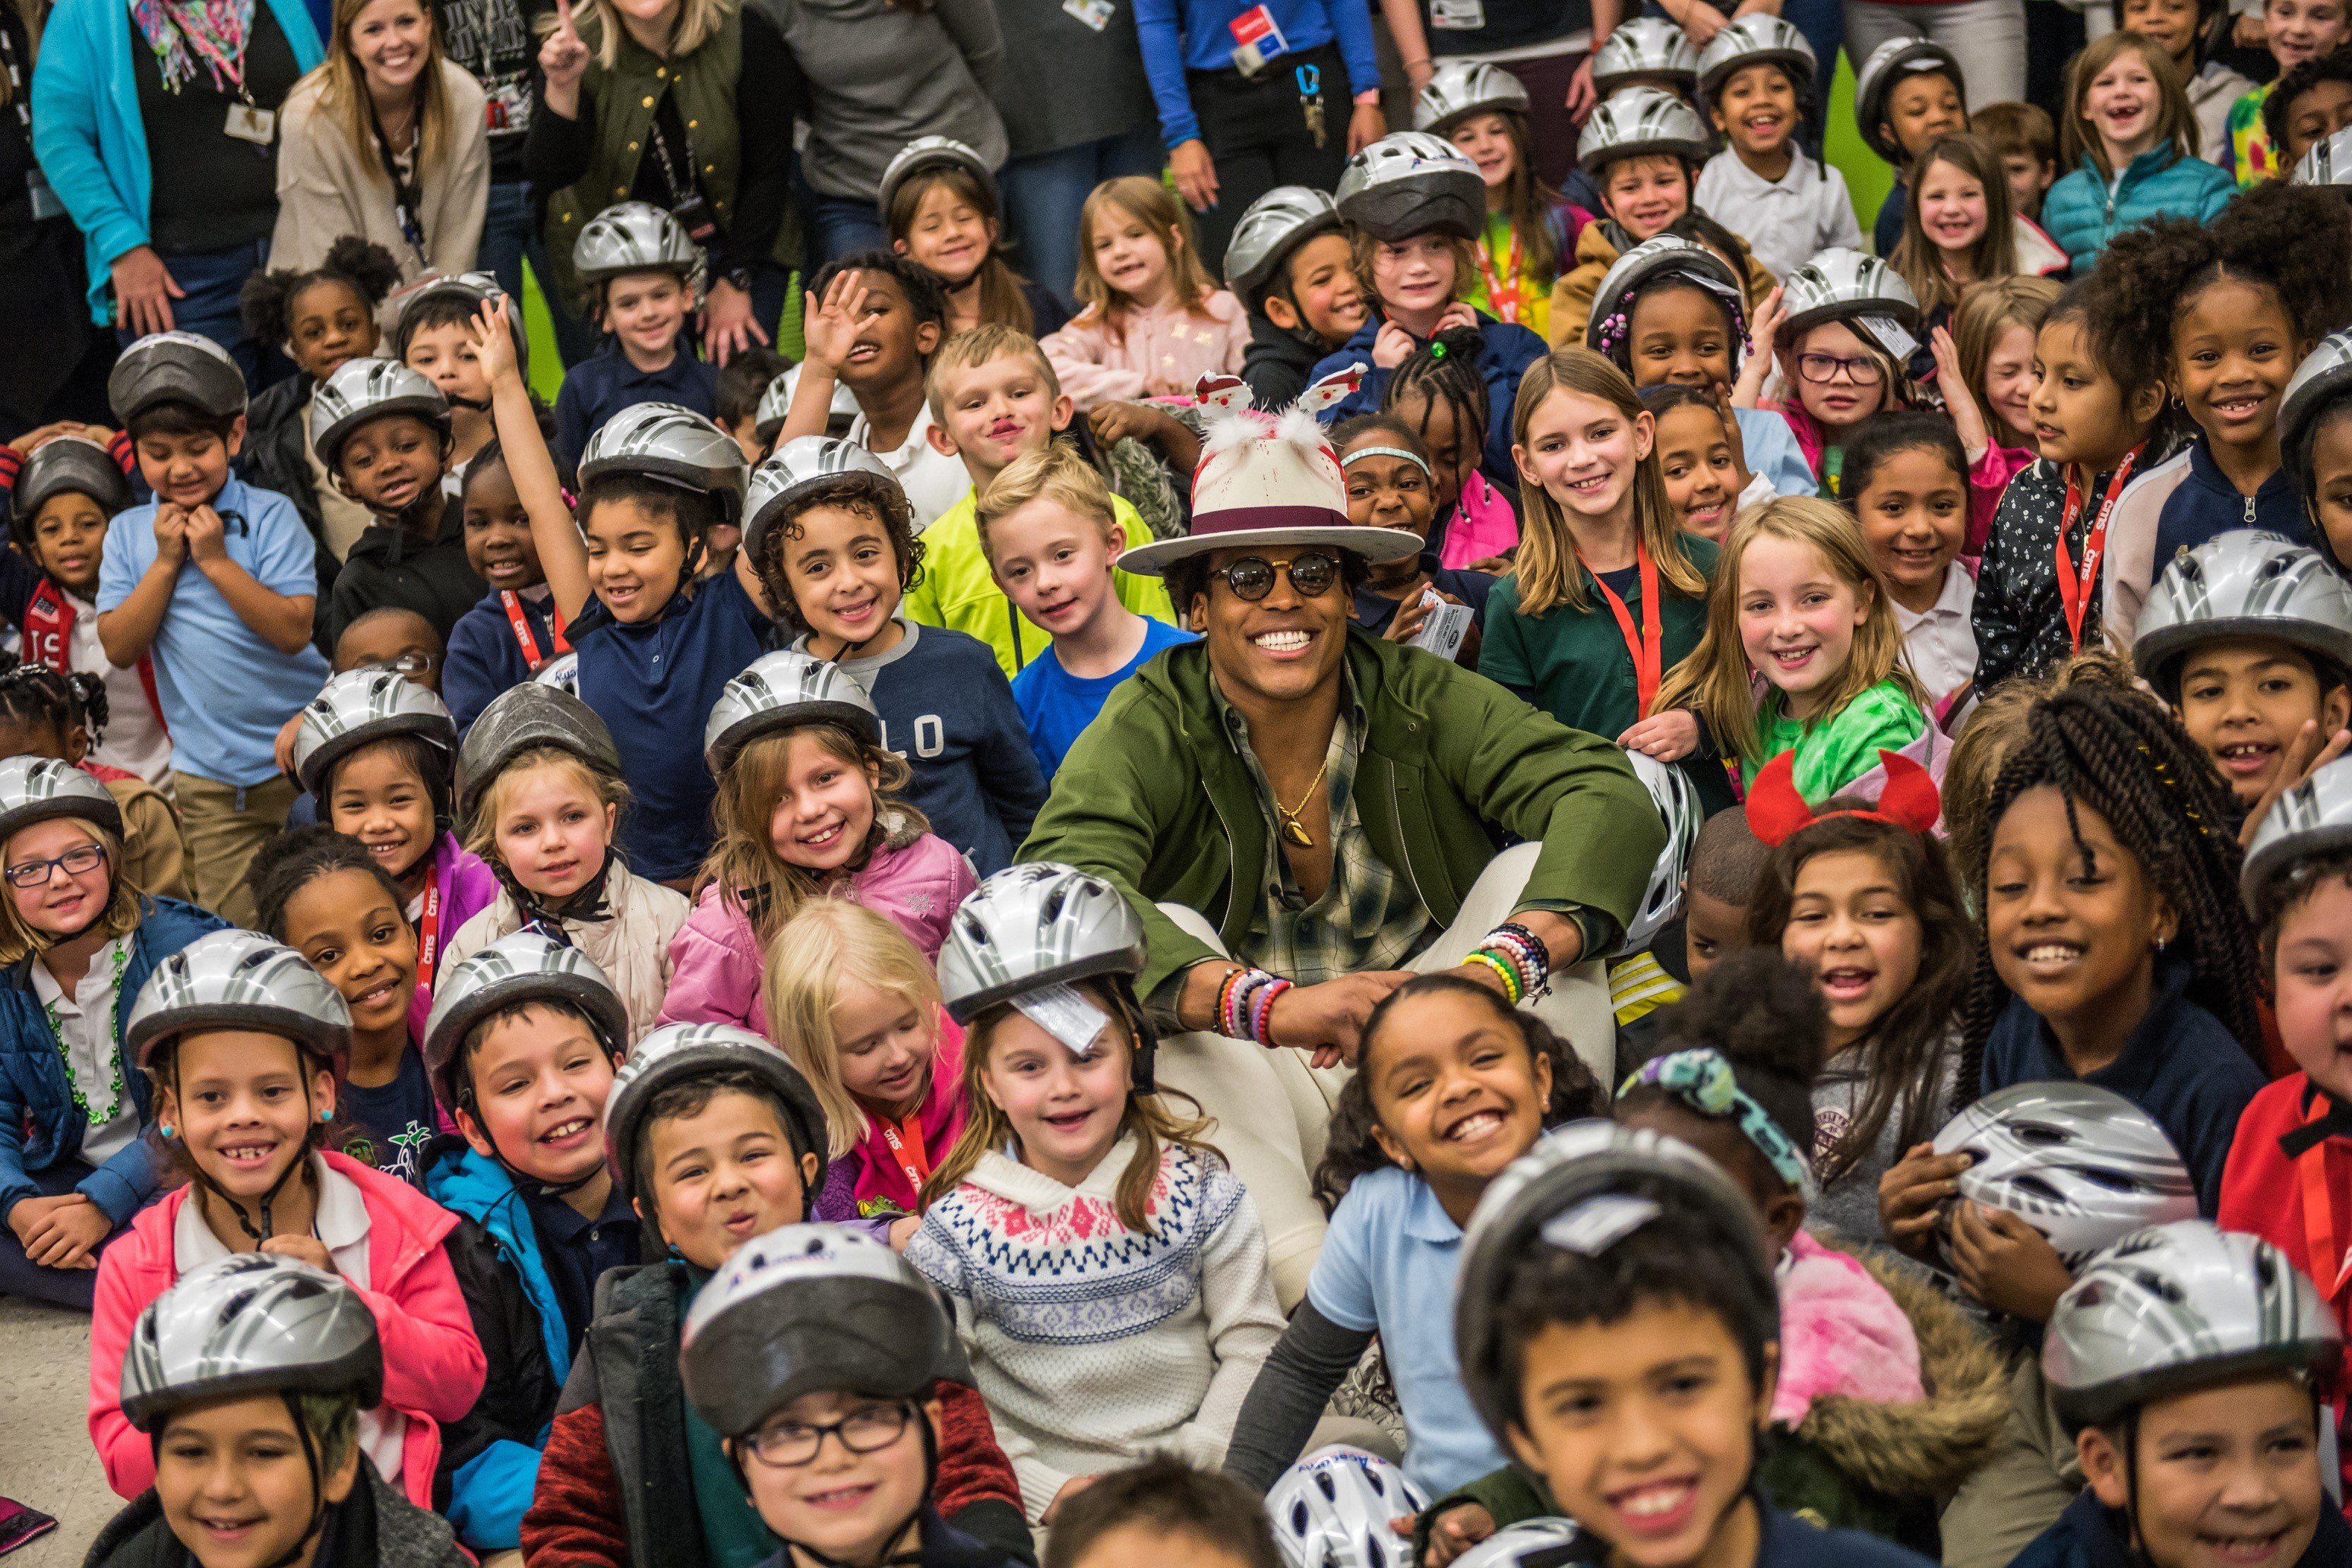 Cam Newton sitting with a large group of children